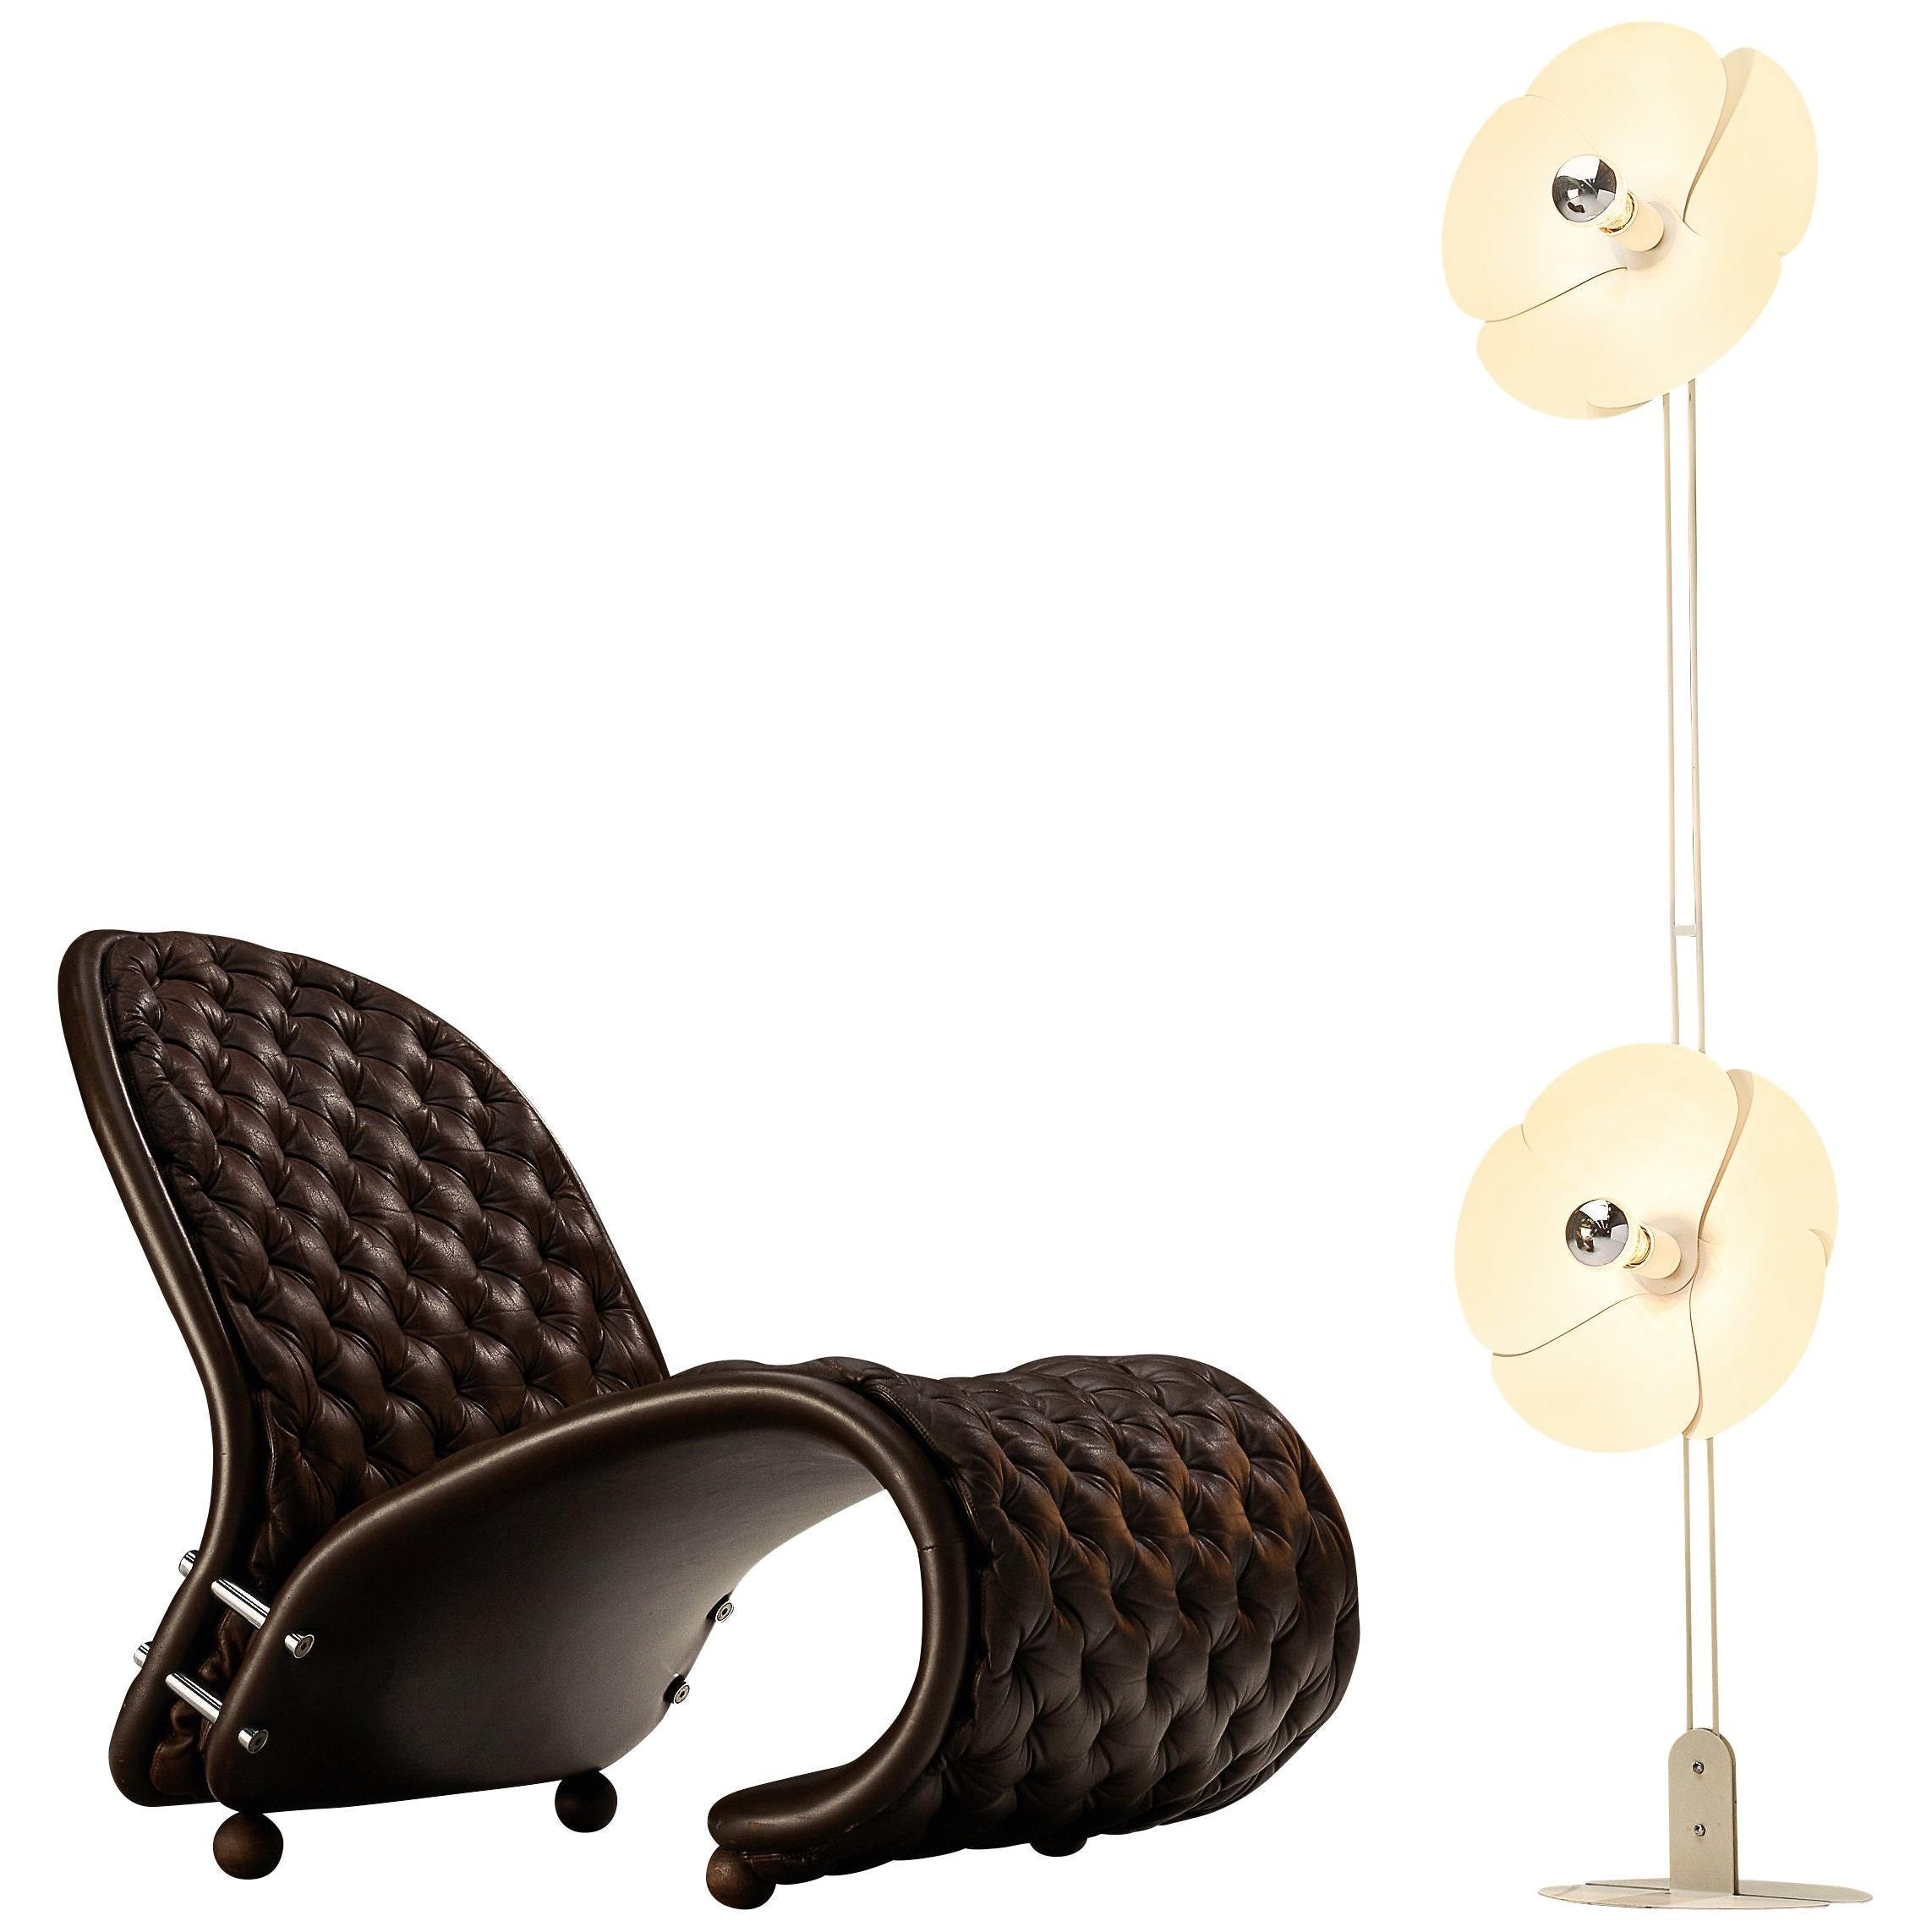 Verner Panton Iconic Lounge Chair in Leather with Olivier Morque Floor Lamp 2093